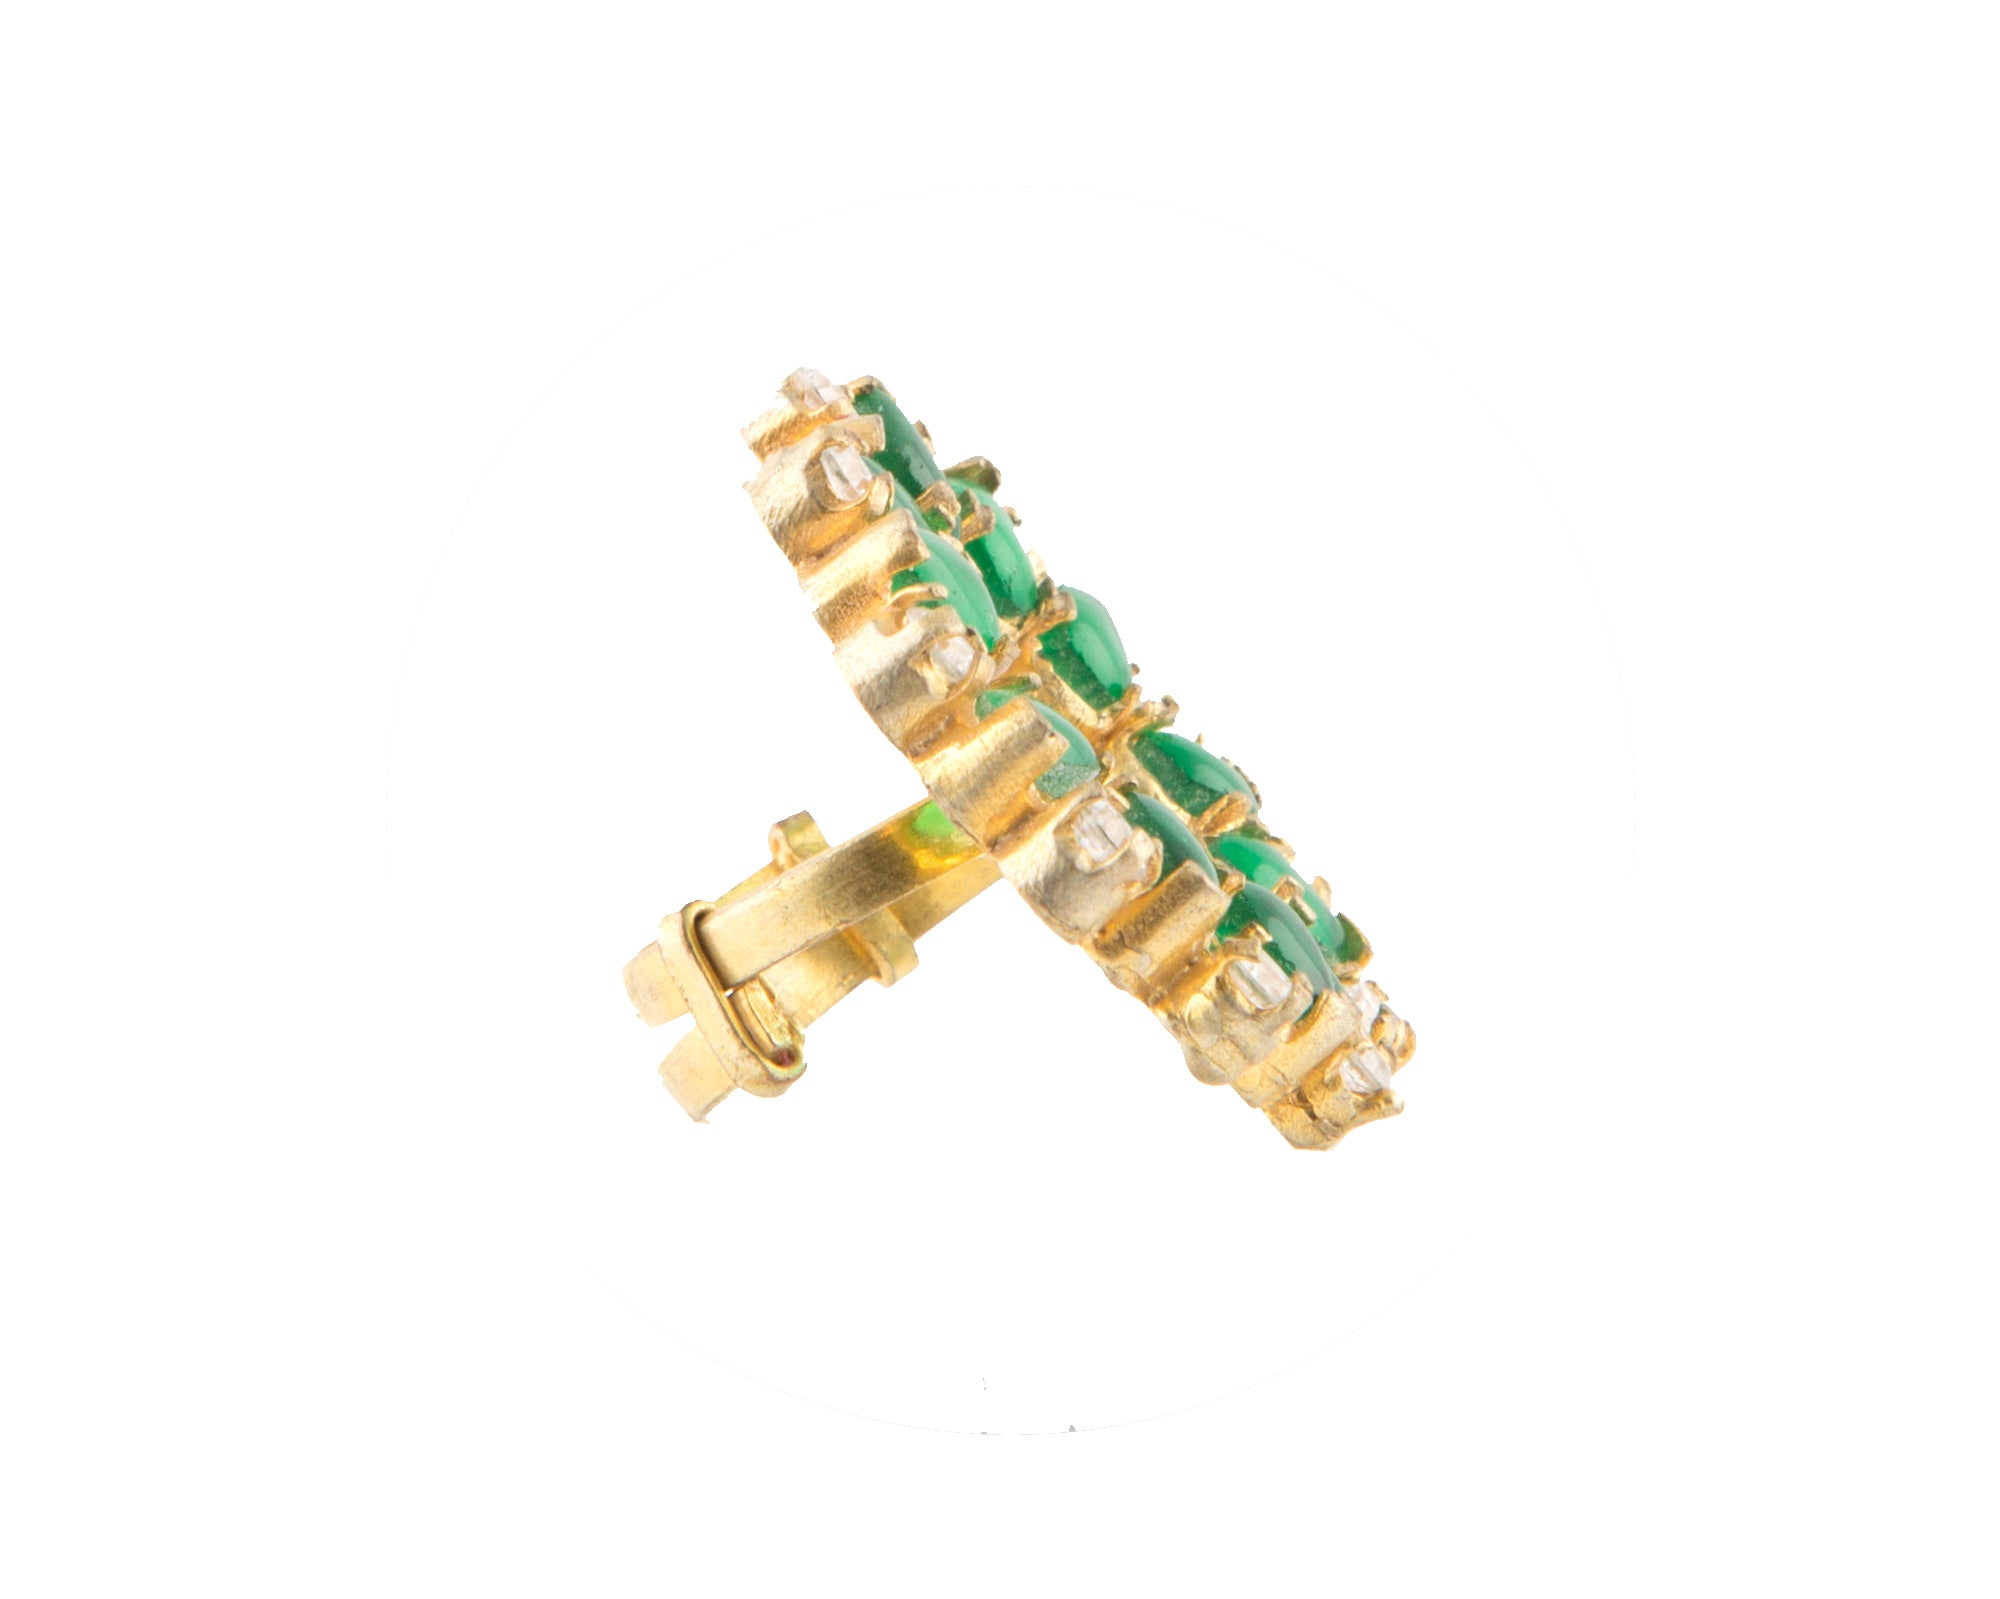 Semi-precious green garnet & white zirconia stone gold plated ring